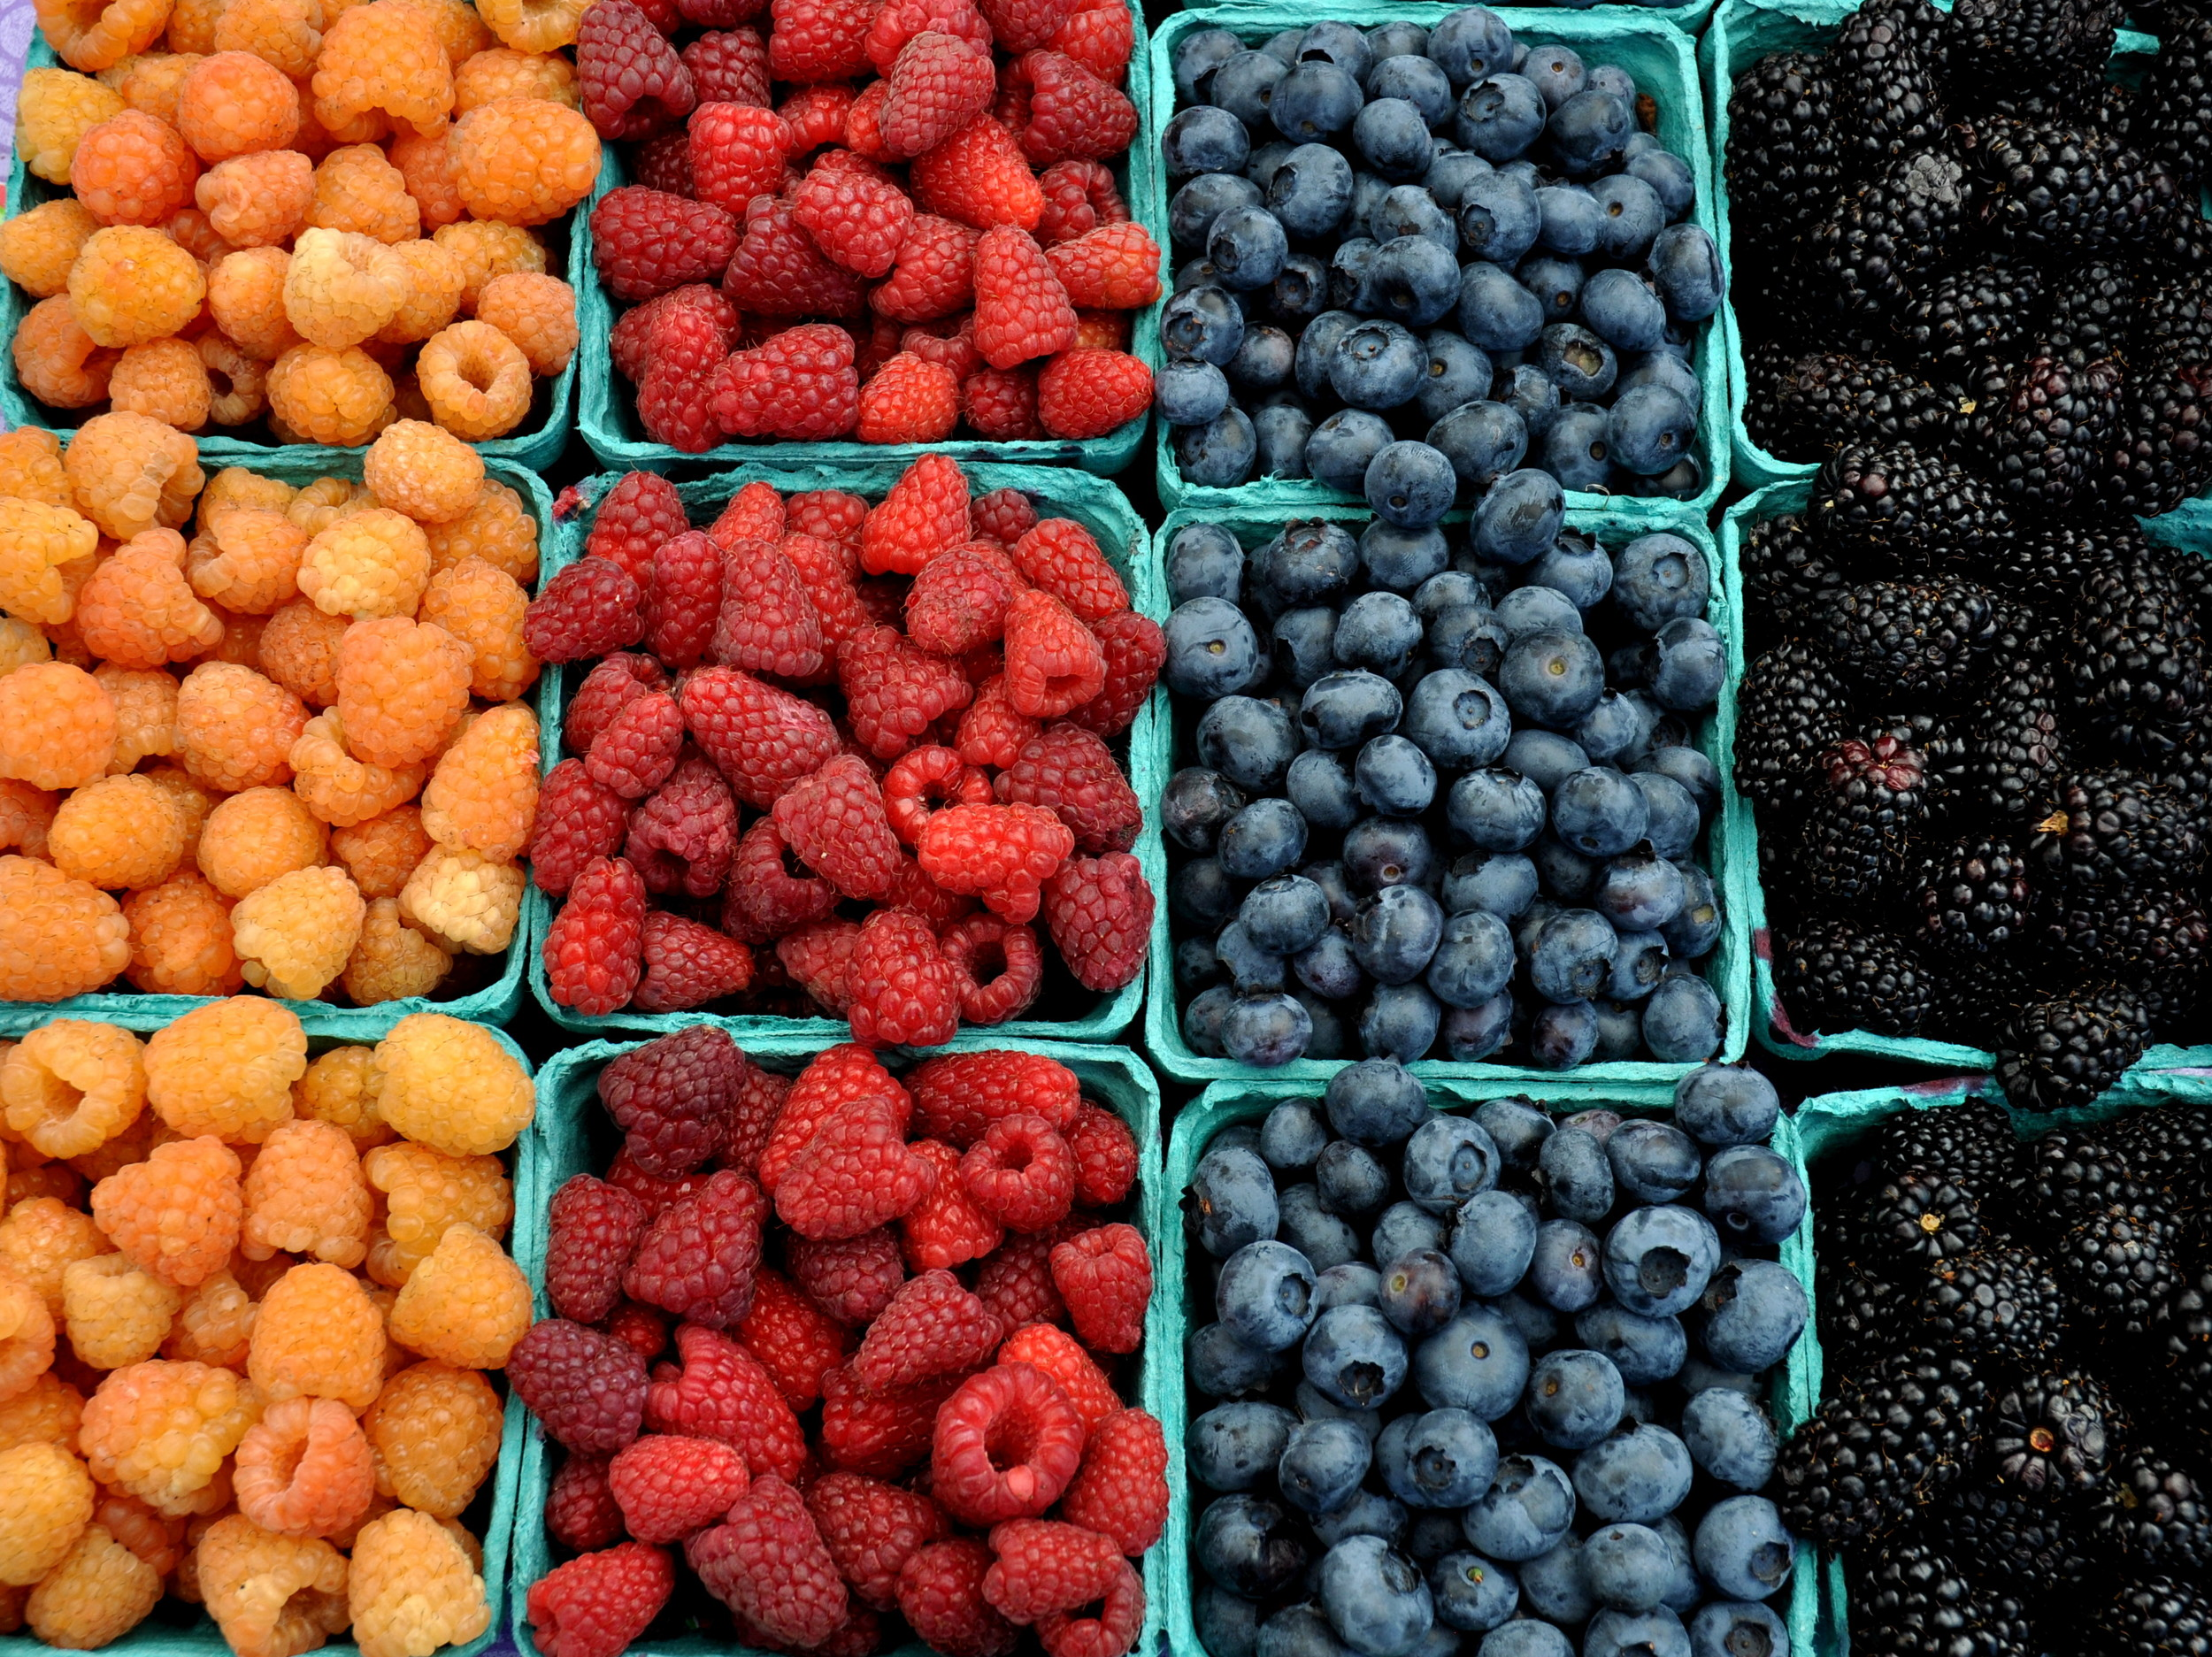 A rainbow of berries from Hayton Farms. Photo copyright 2014 by Zachary D. Lyons.